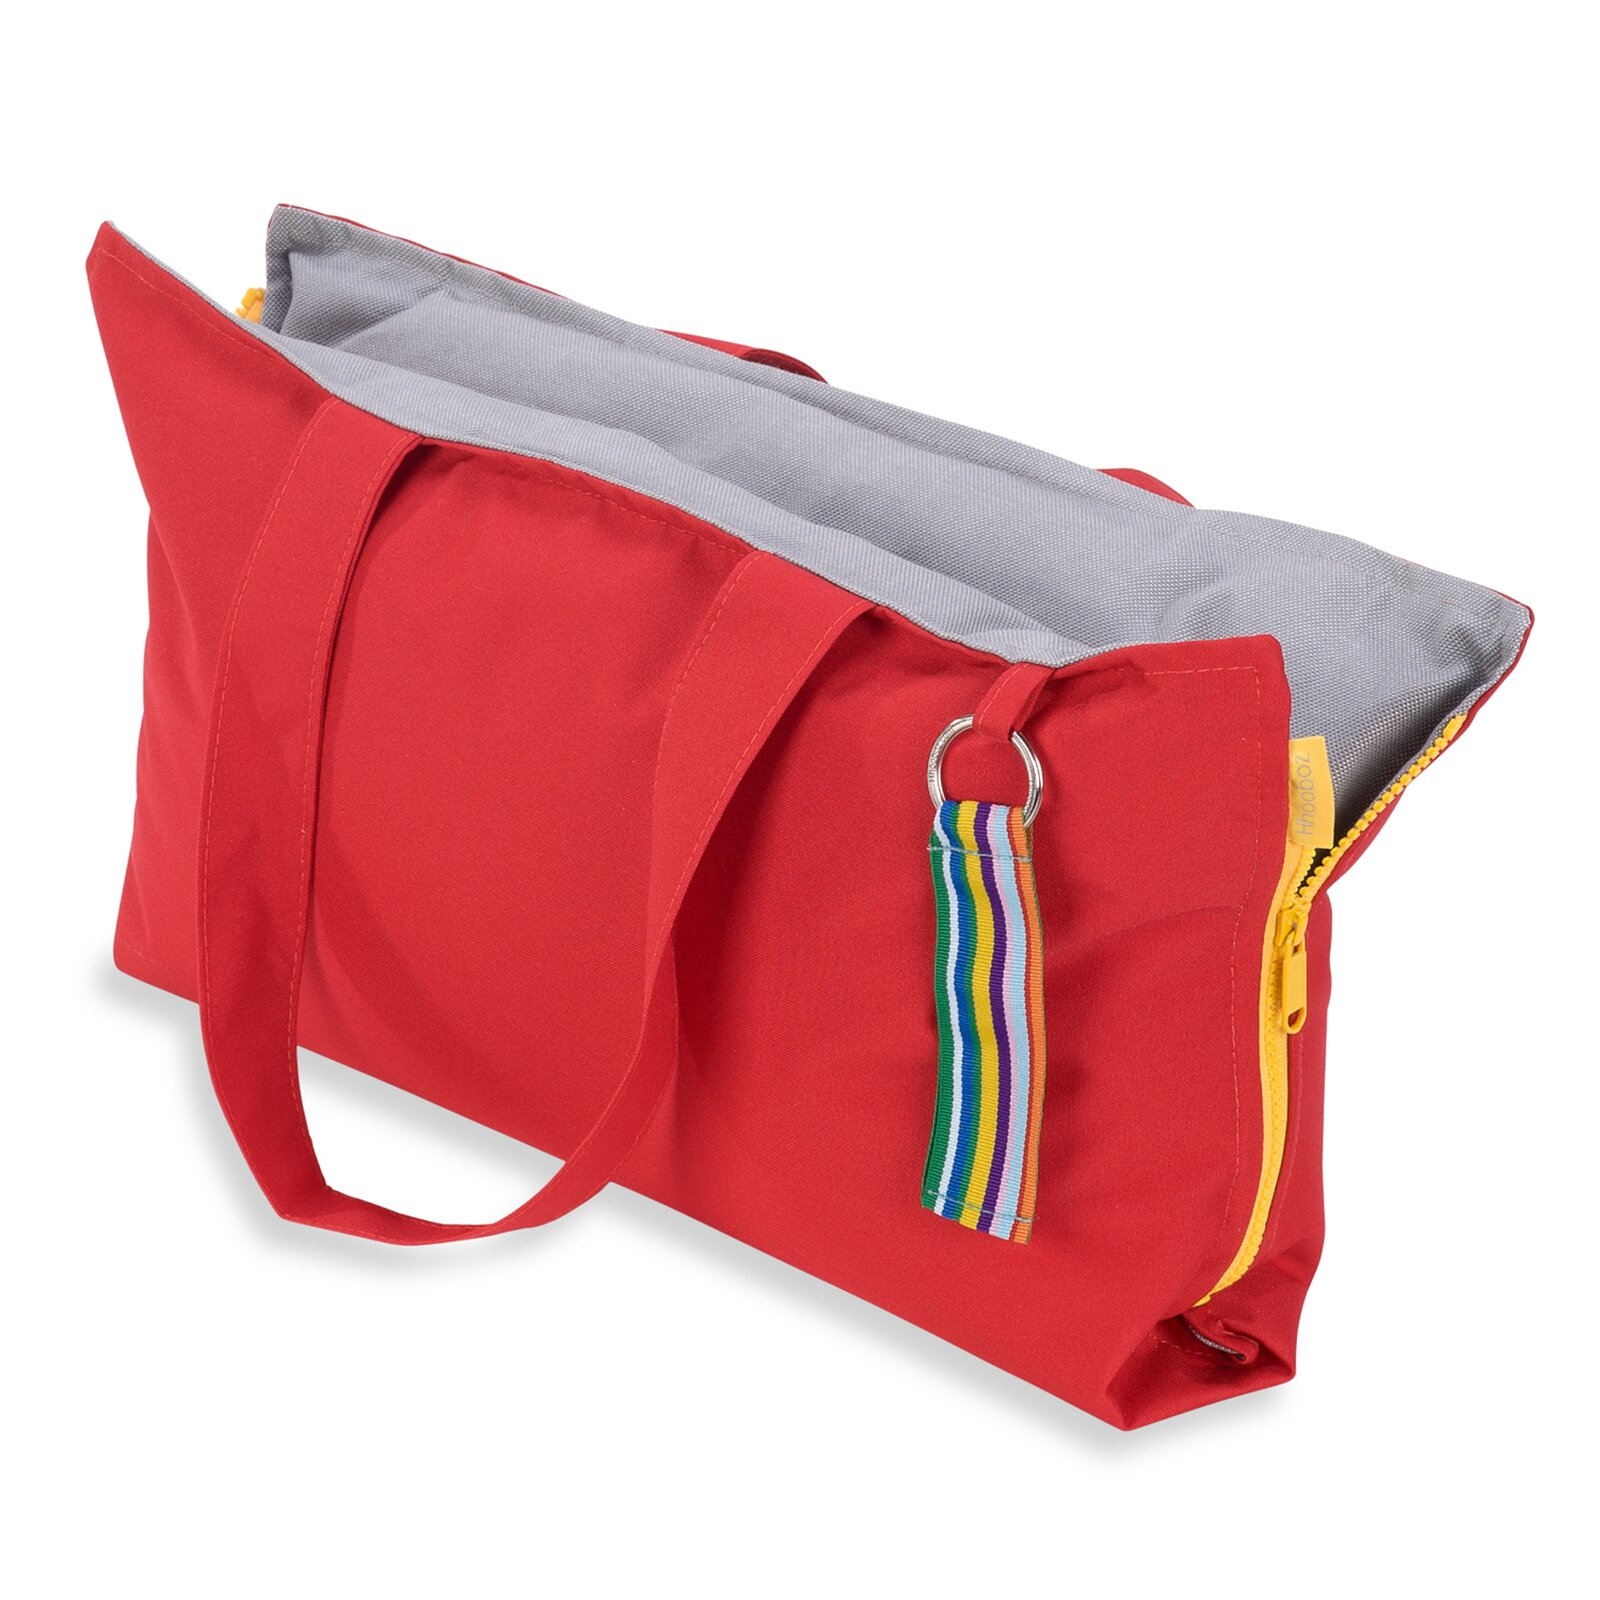 Hhooboz Pillowbag S red-grey